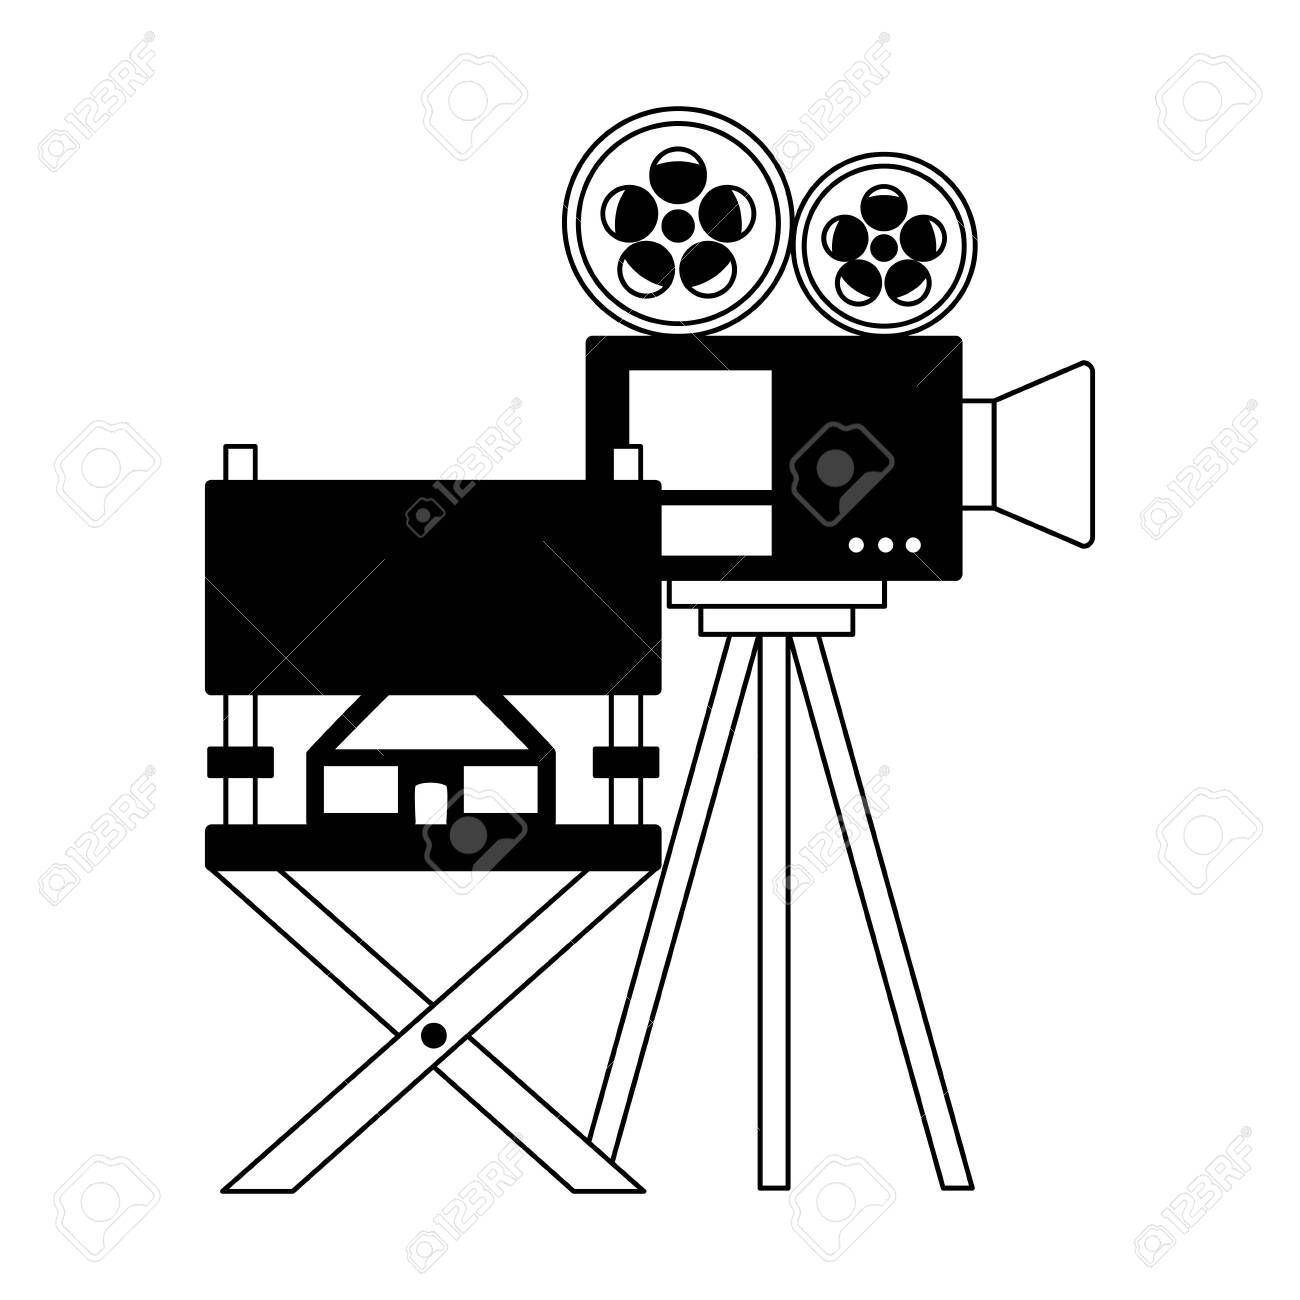 Projector Chair 3d Glasses Cinema Movie Vector Illustration Sponsored Glasses Chair Projector Cinema Illustration Watercolor Logo Templates Art